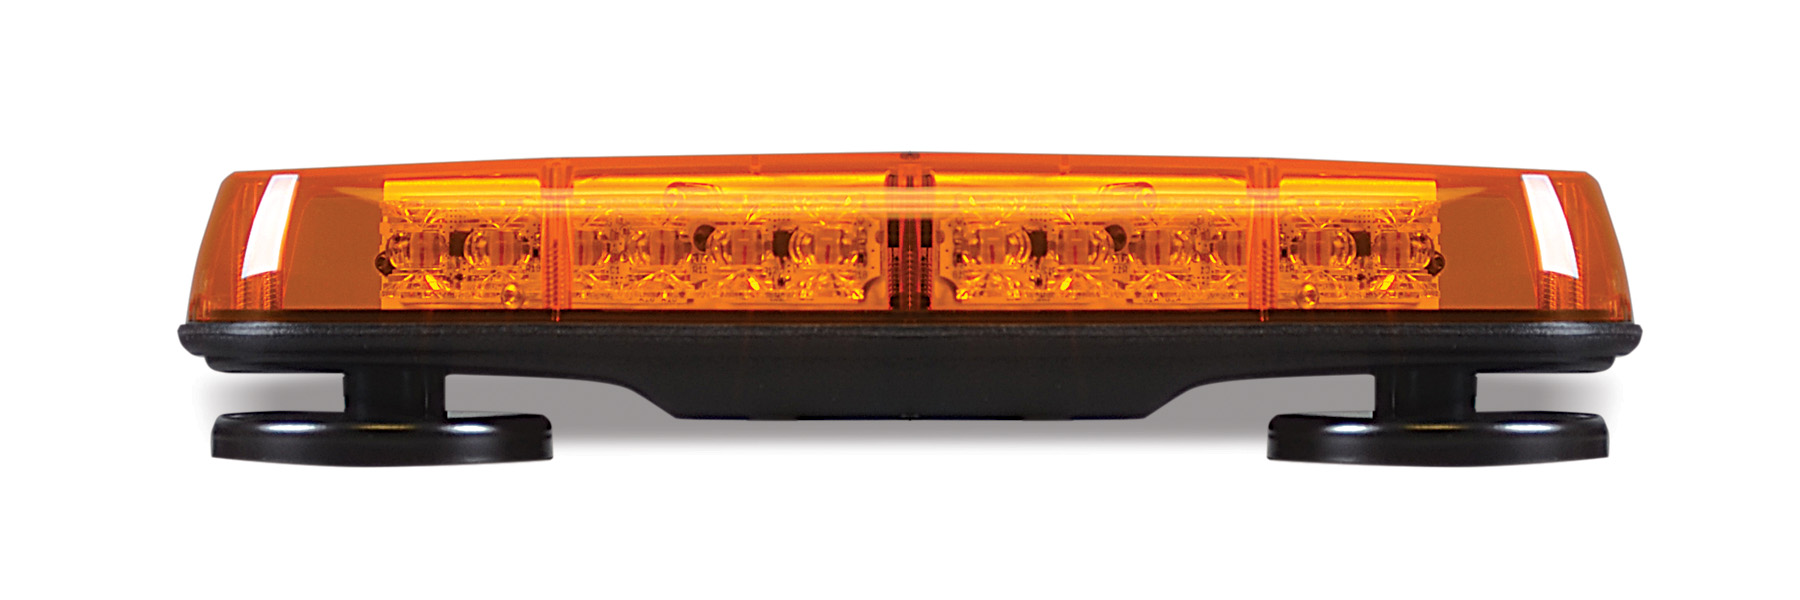 Pinnacle Mini LED Lightbar Product Image